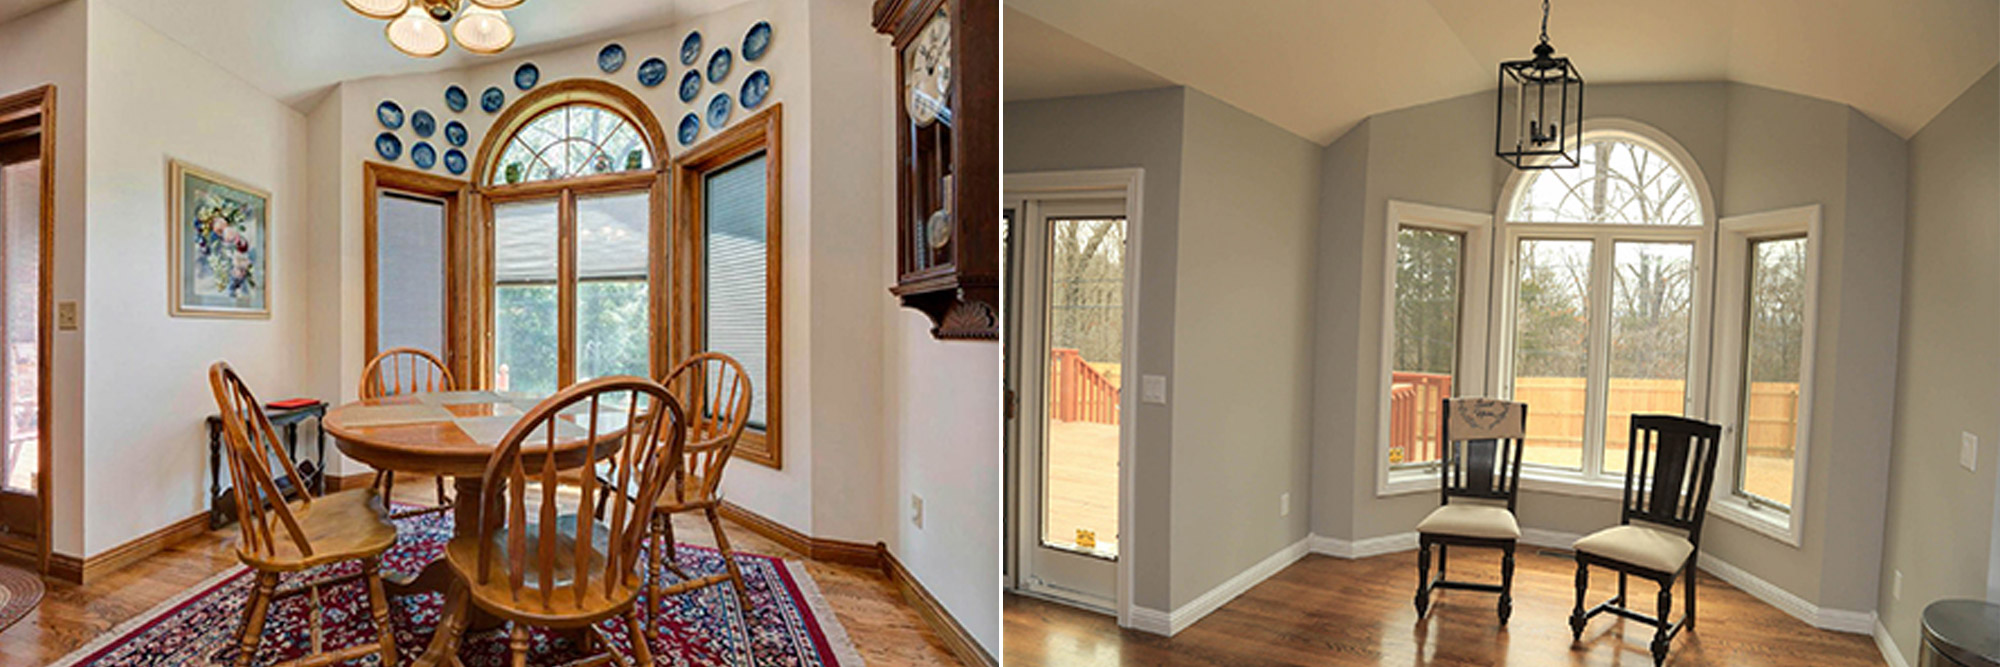 Dining Room - Before & After